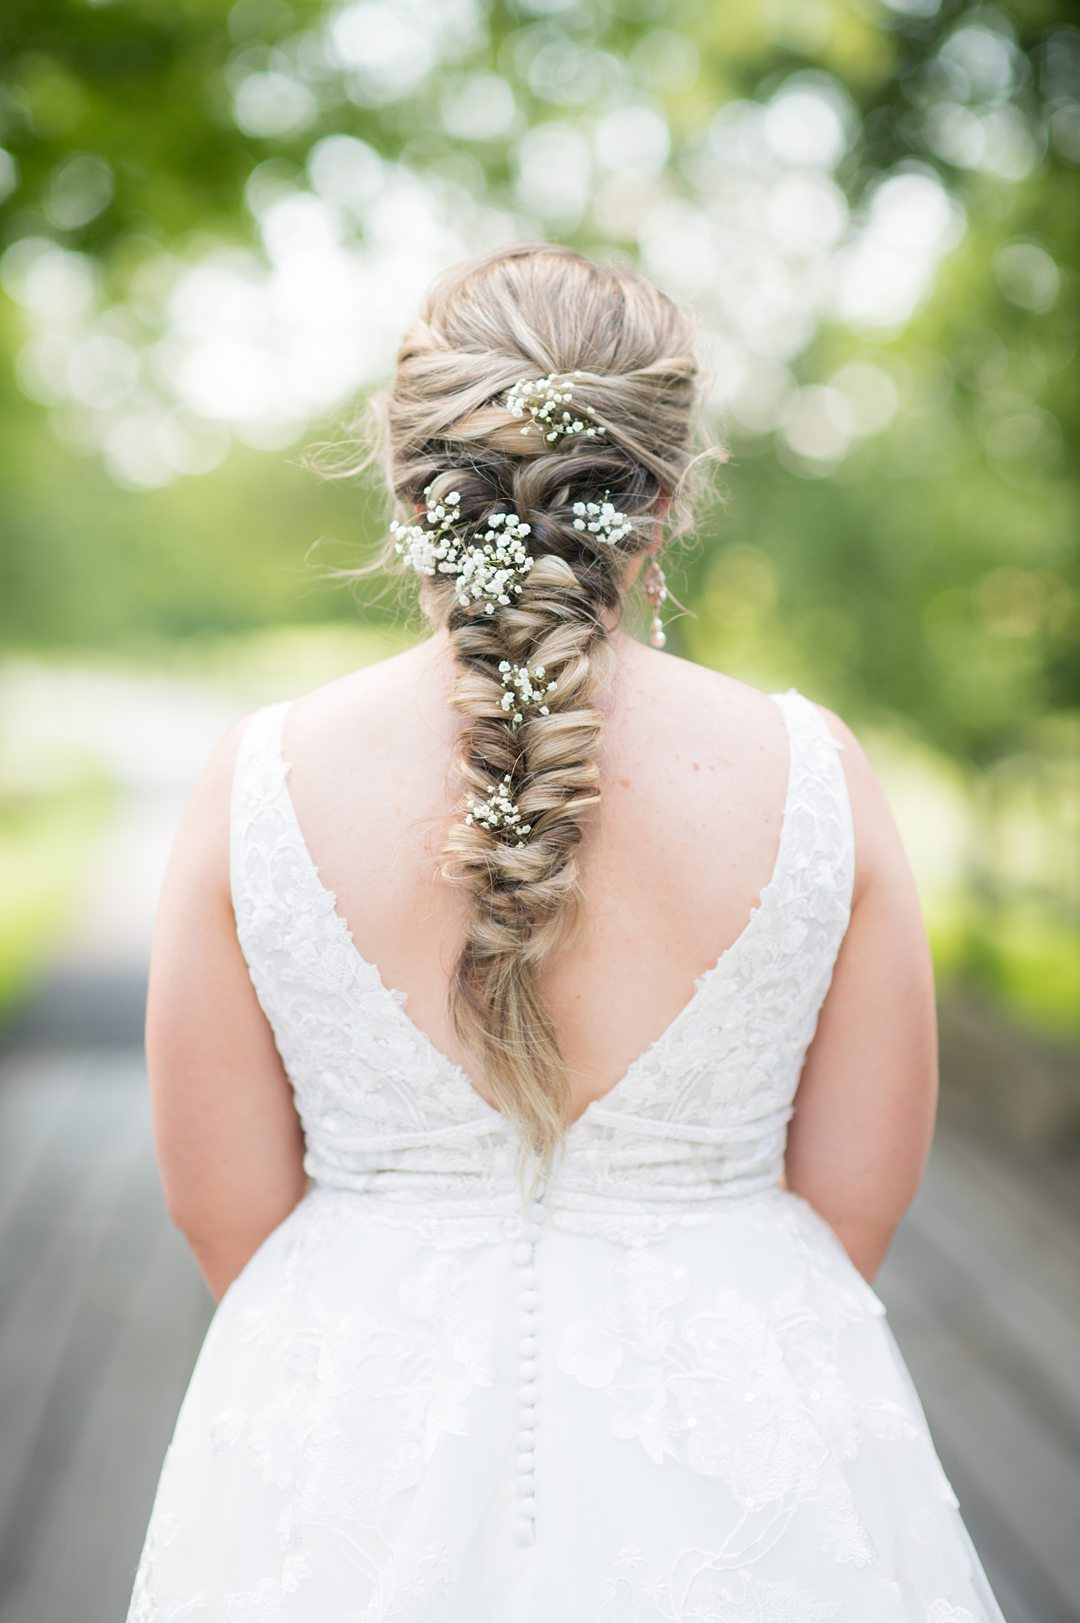 The bride had baby's breath in her fish tail style braid for her wedding day look. Photos by Mikkel Paige Photography. #mikkelpaige #mountaidafarm #charlottesvillewedding